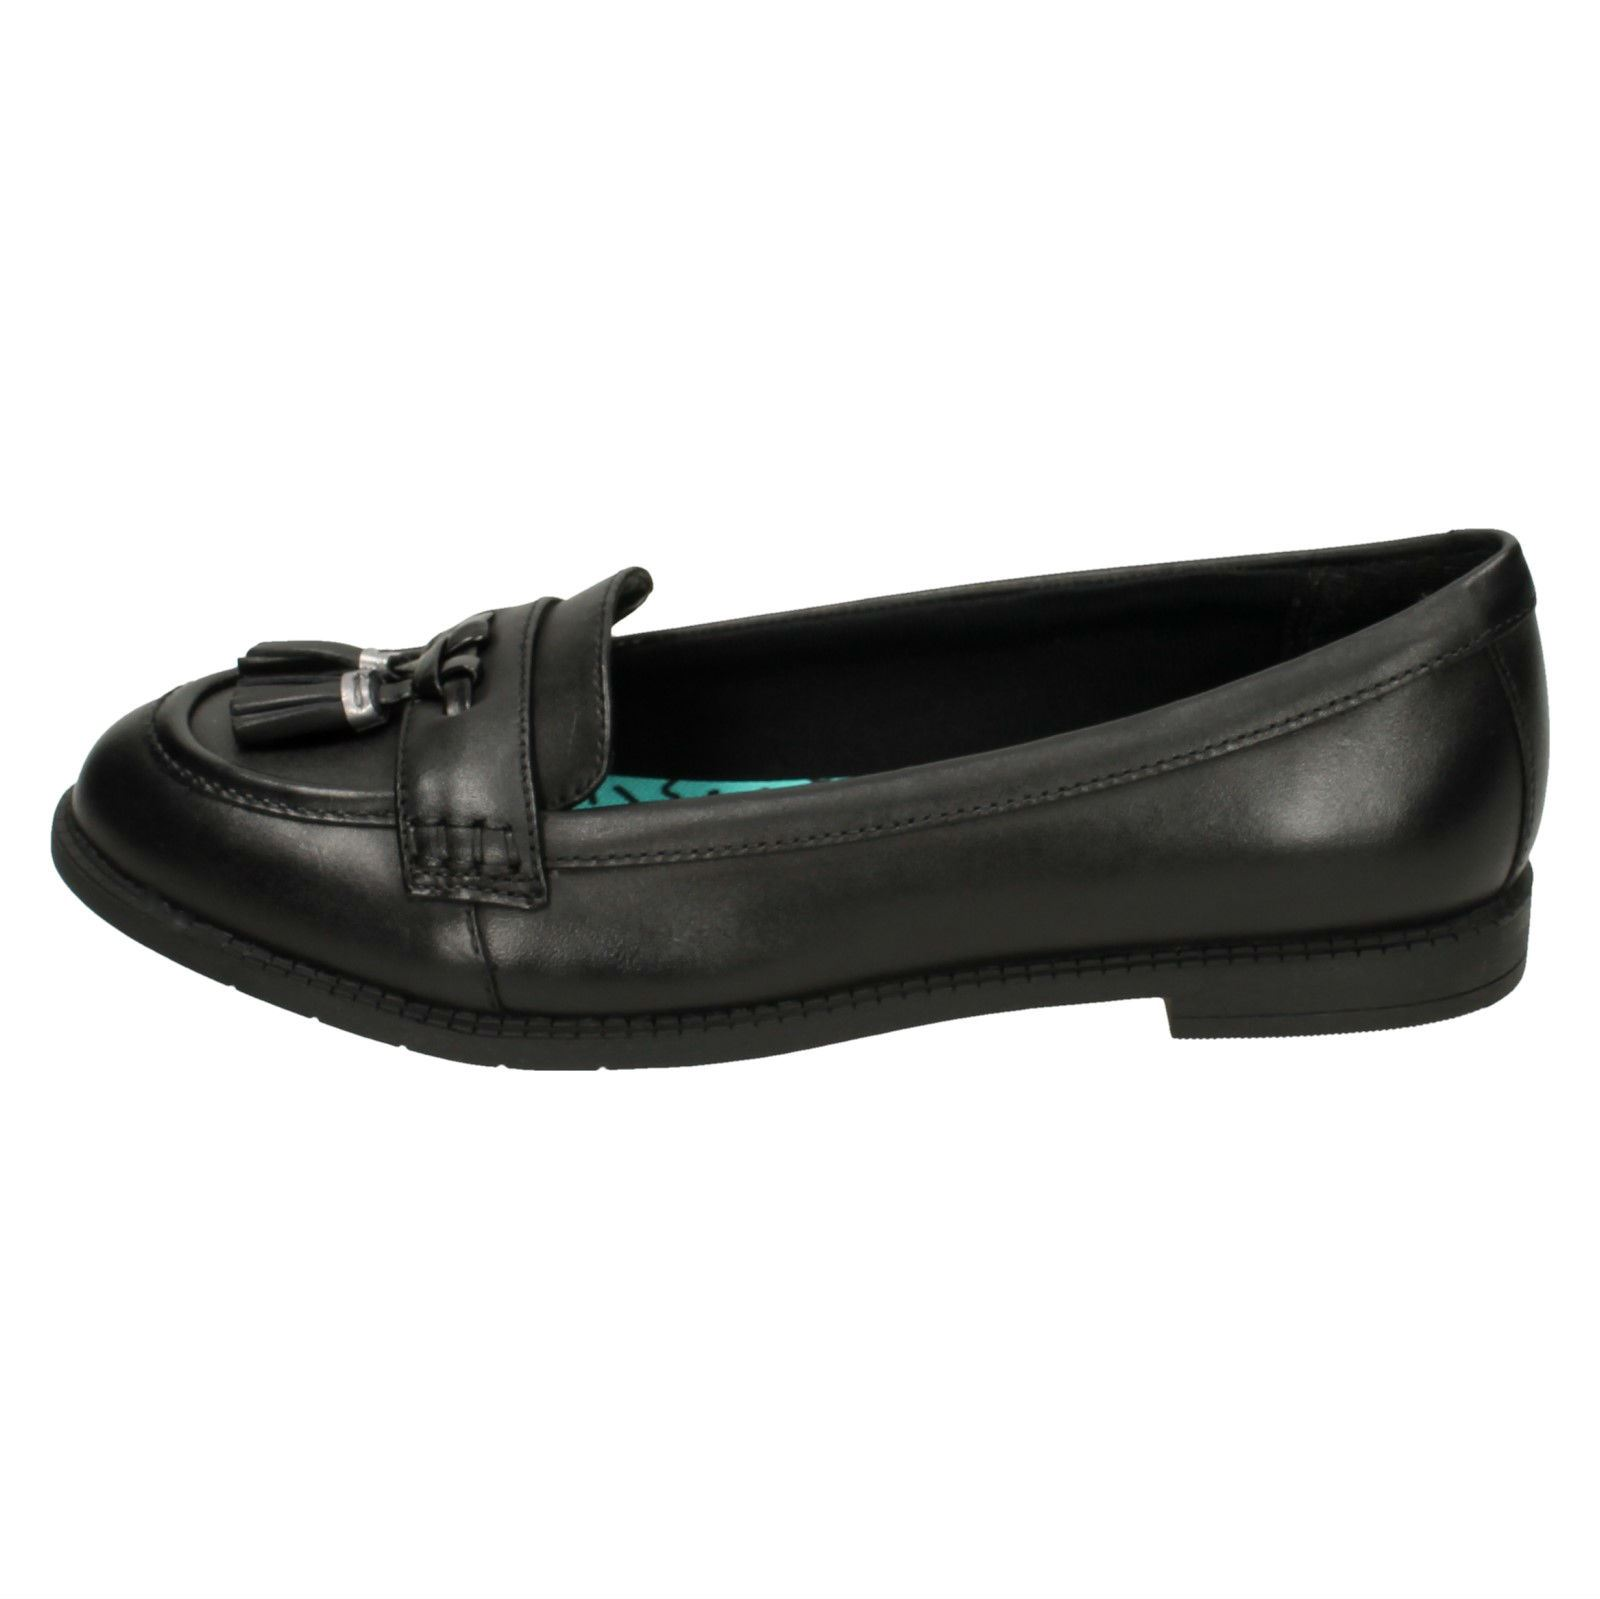 Girls-Bootleg-By-Clarks-Loafer-Style-School-Shoes-Preppy-Edge